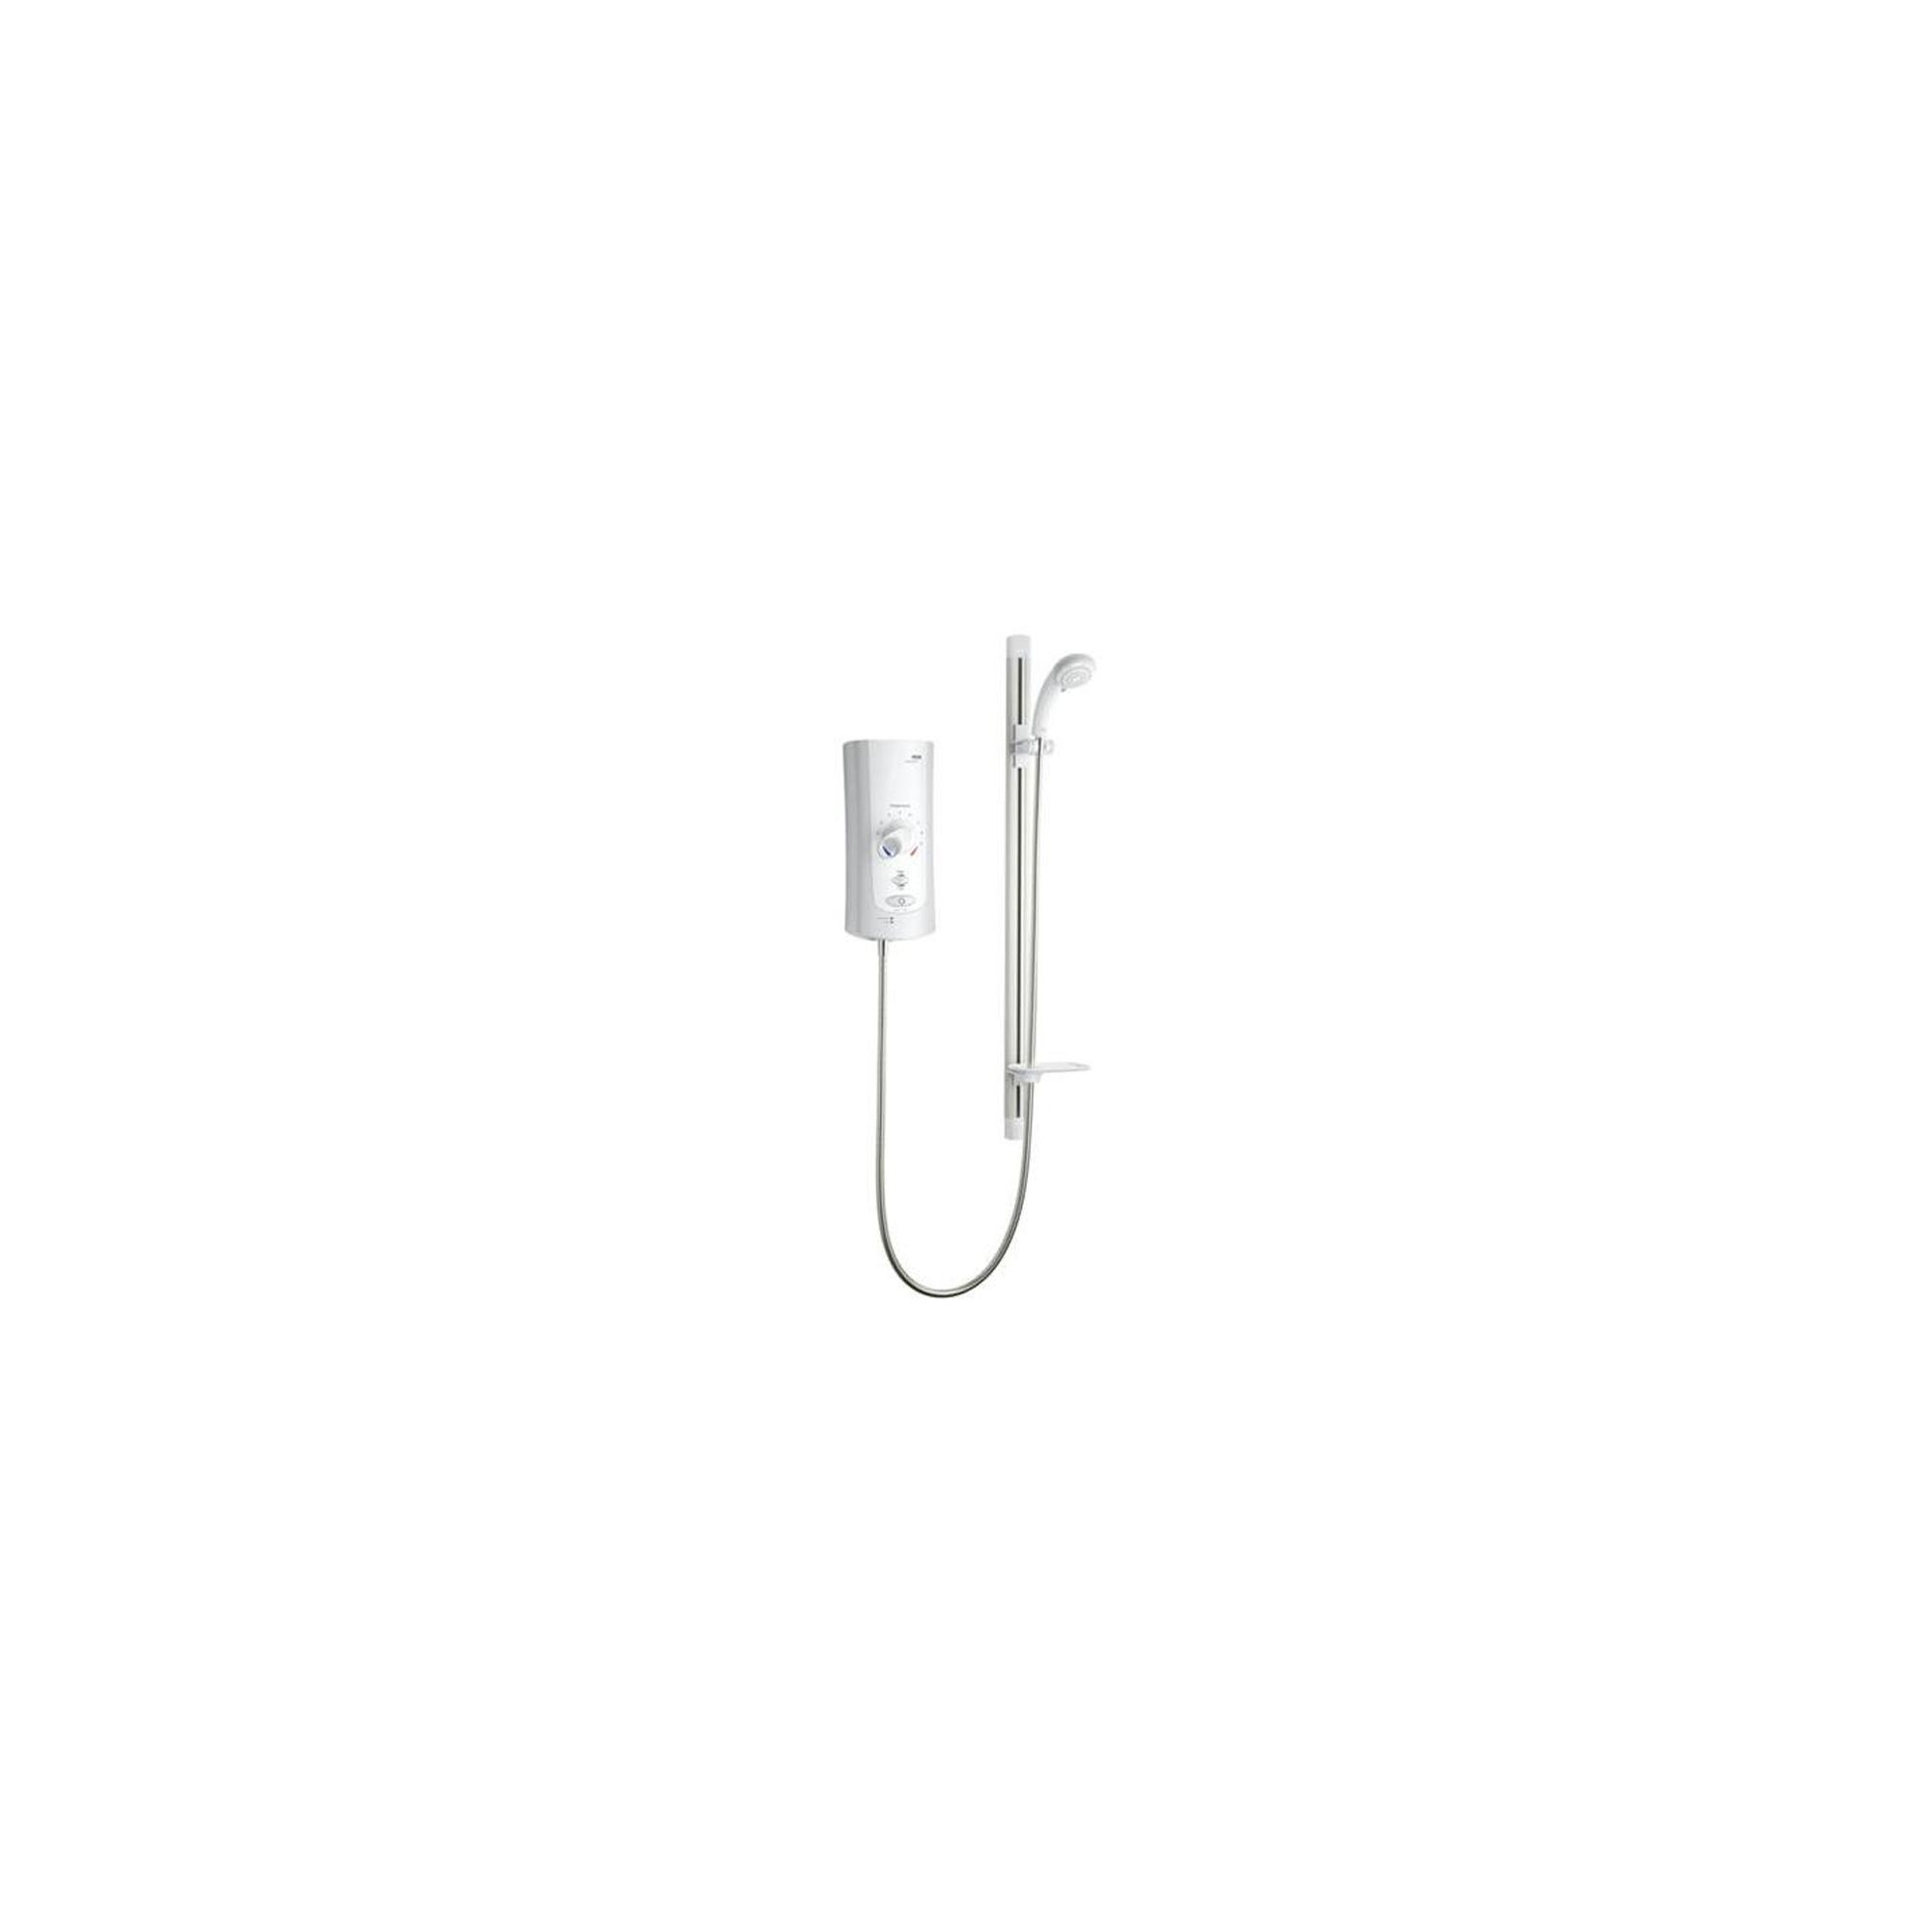 Mira Advance ATL Flex 9.0 kW Electric Shower, Handset, White/Chrome at Tesco Direct